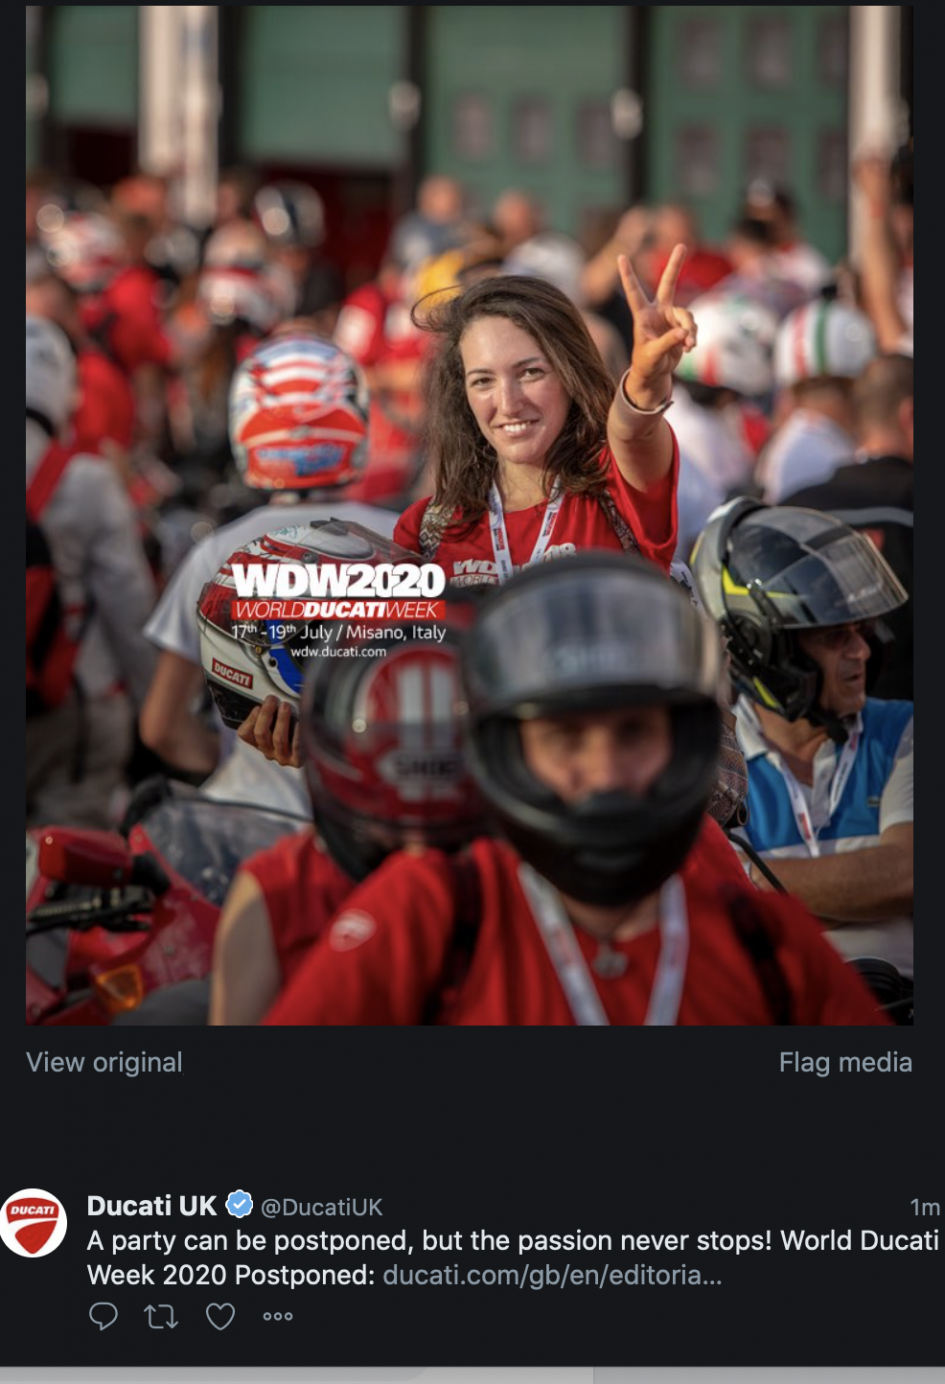 Moto - News: Postponed to 2021 the WDW 2020, but Ducati's passion does not stop there